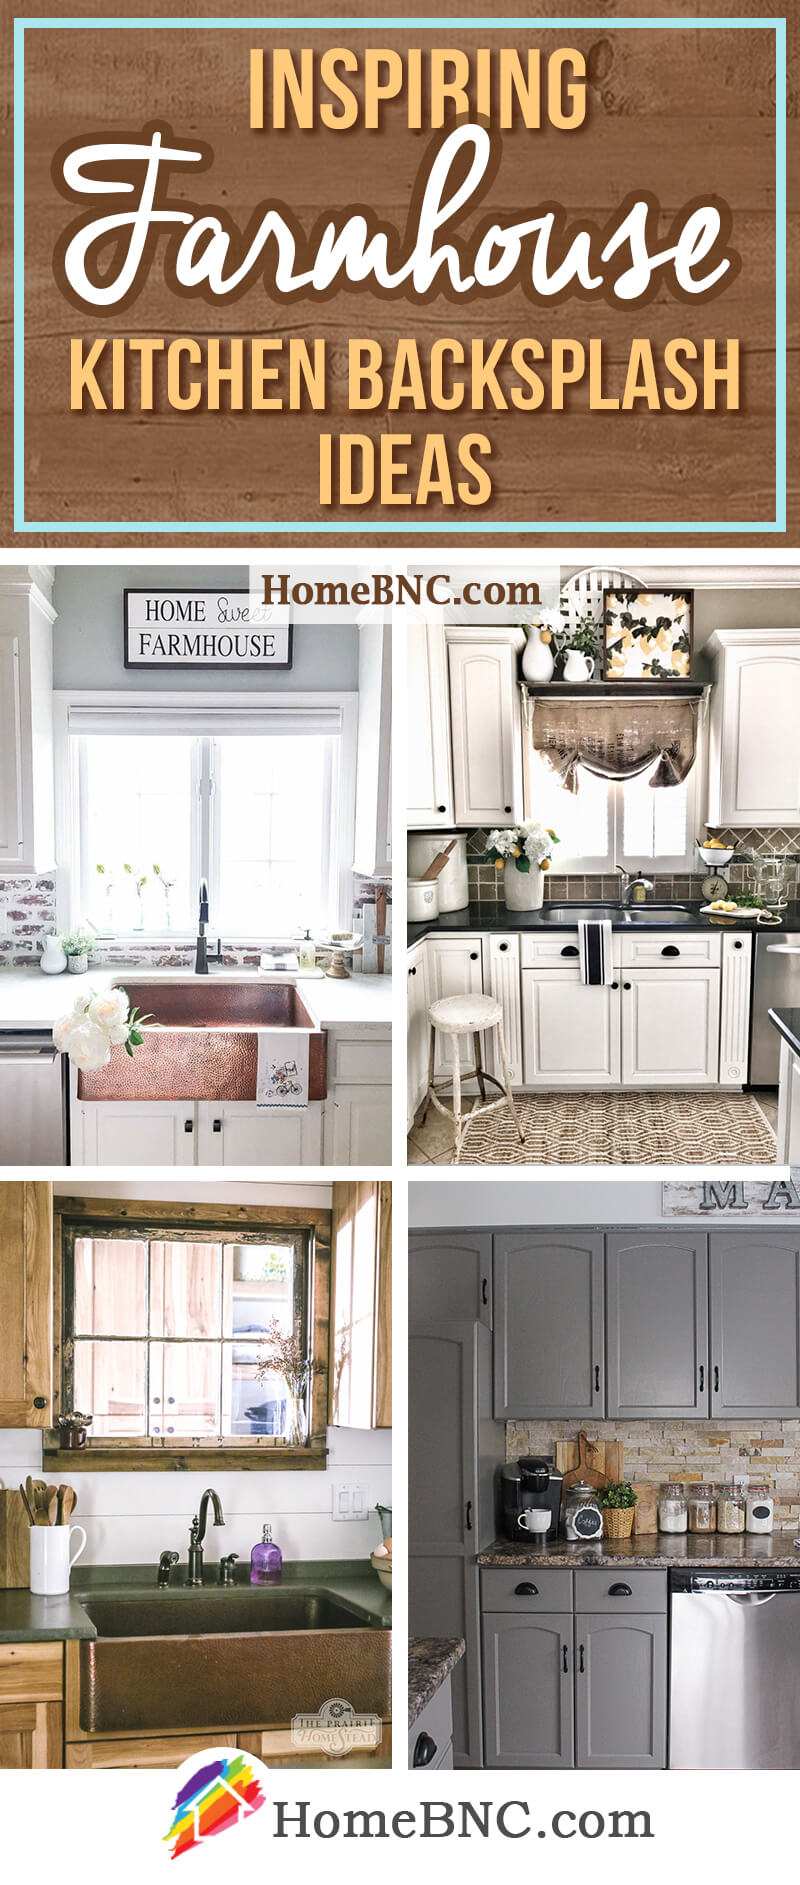 Farmhouse Kitchen Backsplash Ideas